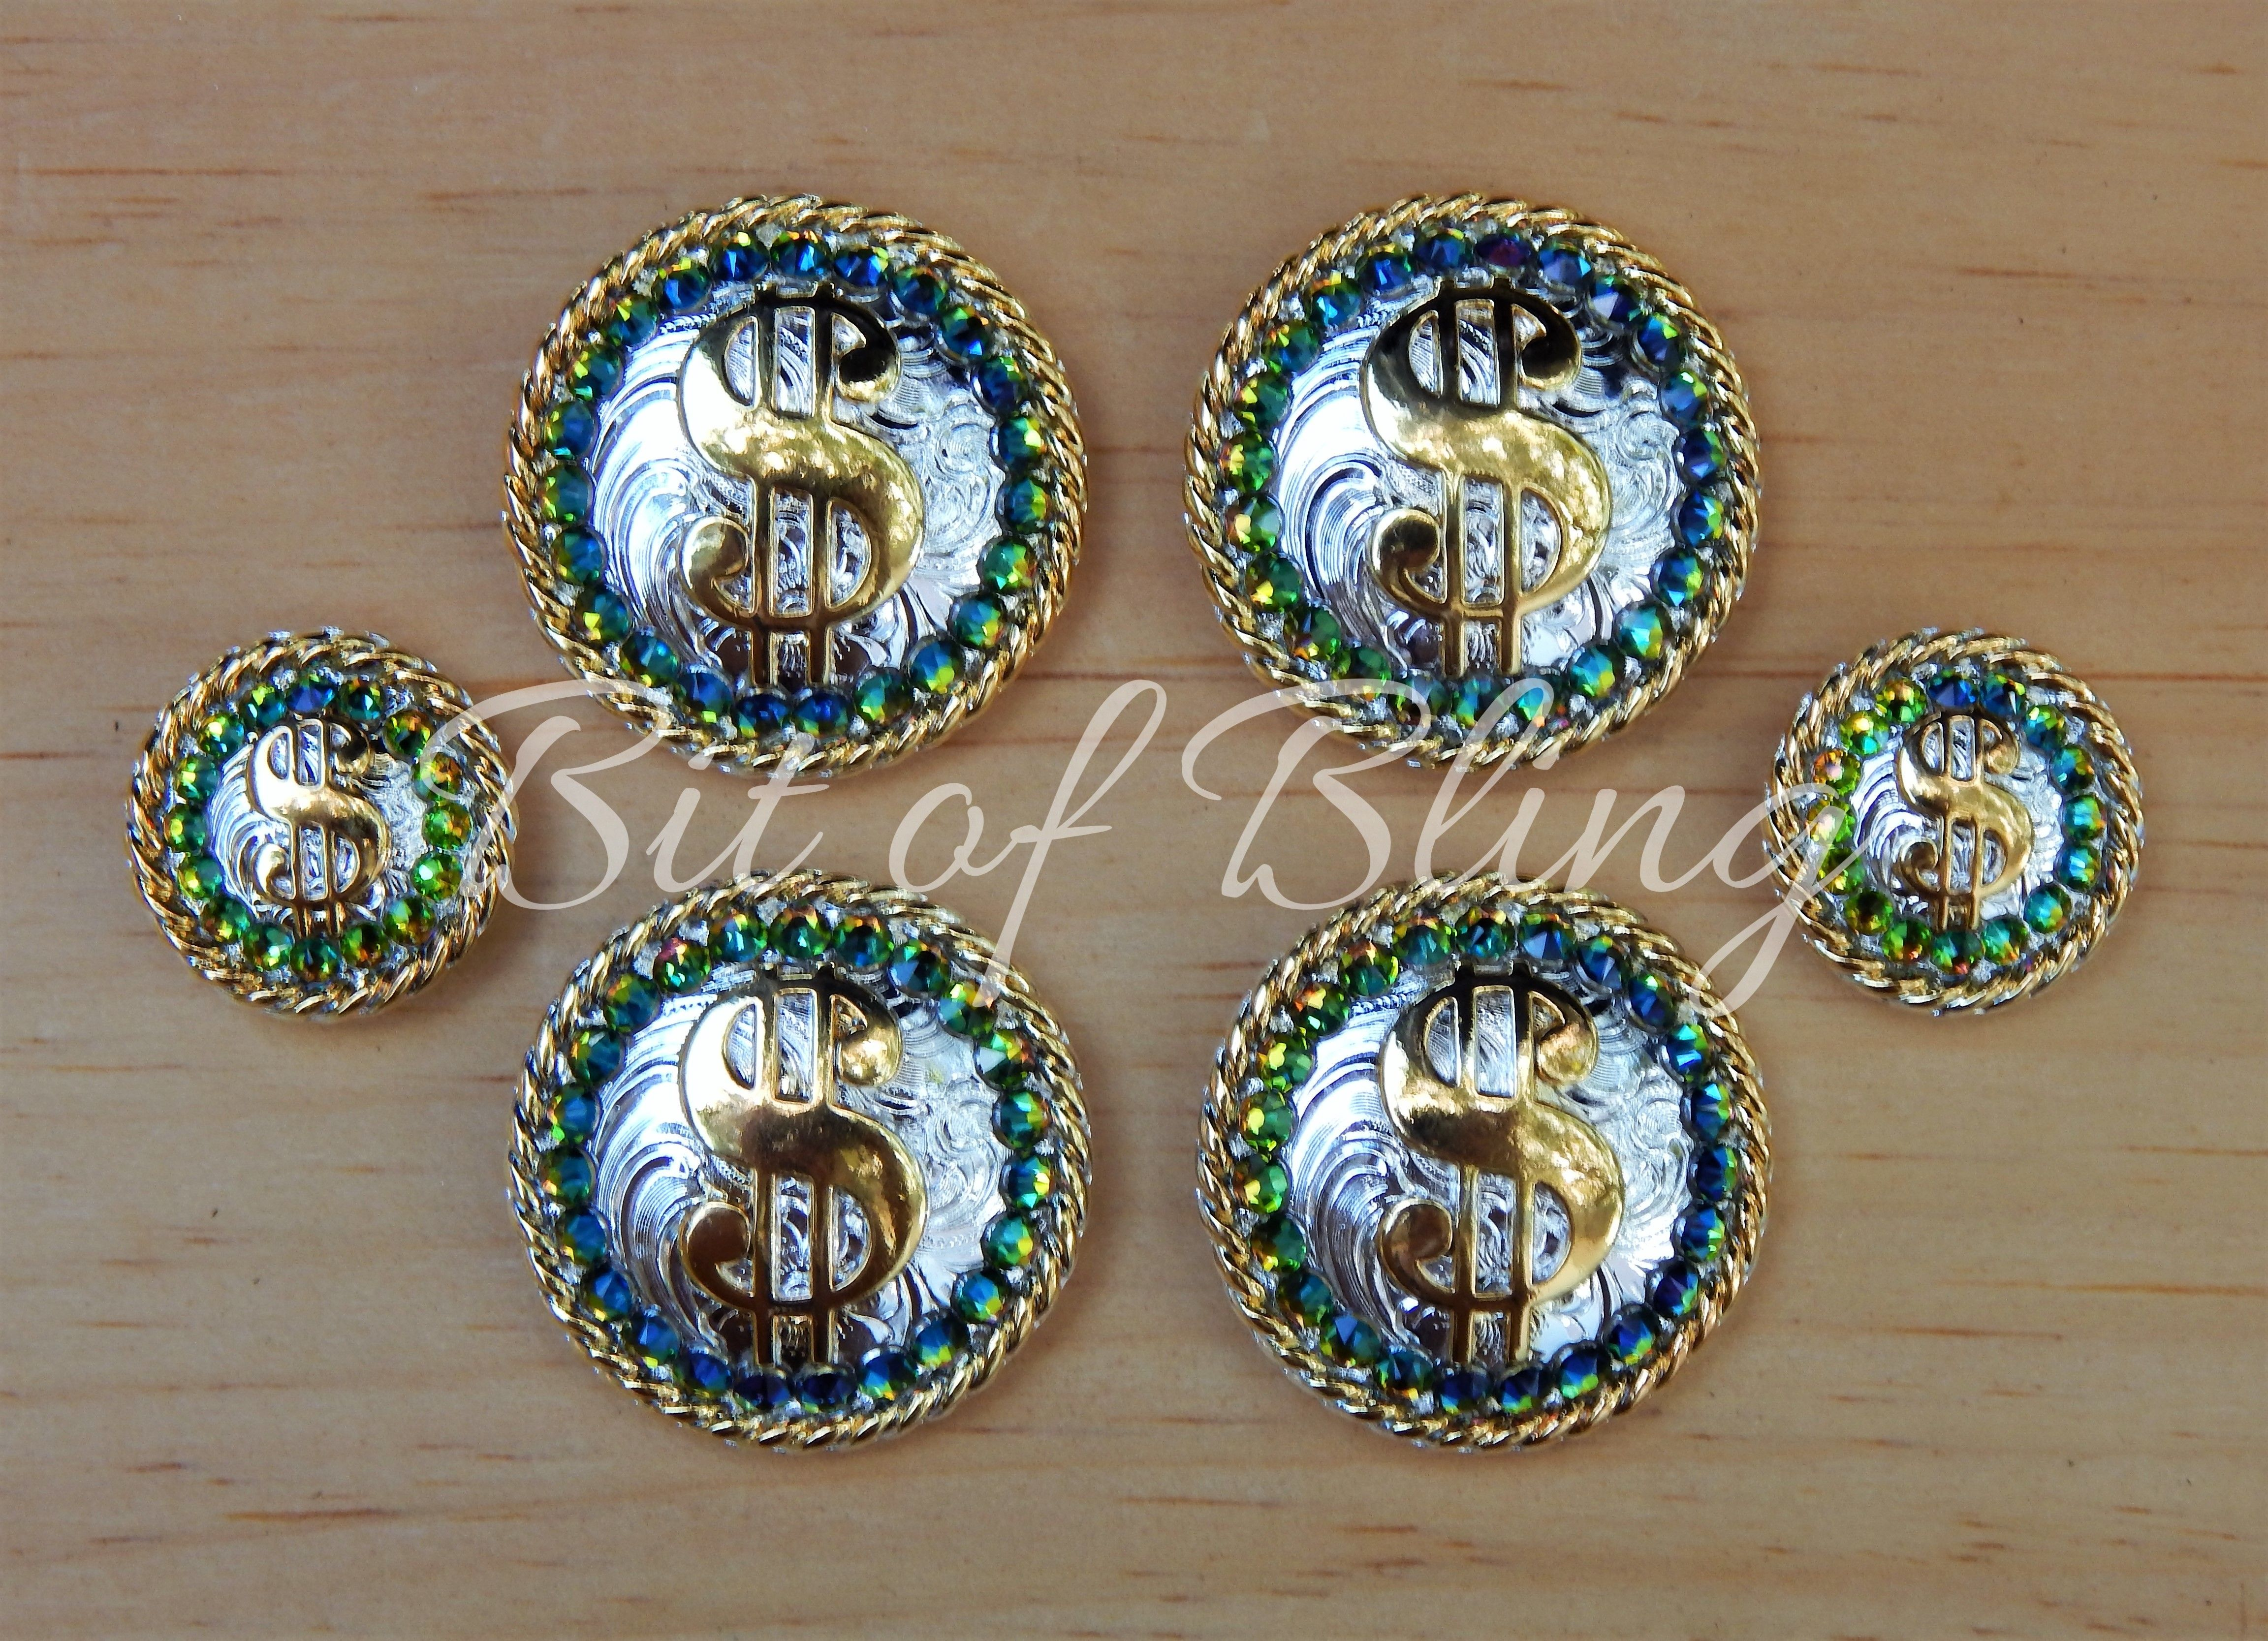 Silver /& Gold Round Rope Edge Money Cash Concho Horse Tack Rodeo Barrel Racing Pole Bending Trail Riding Western Pleasure Equine